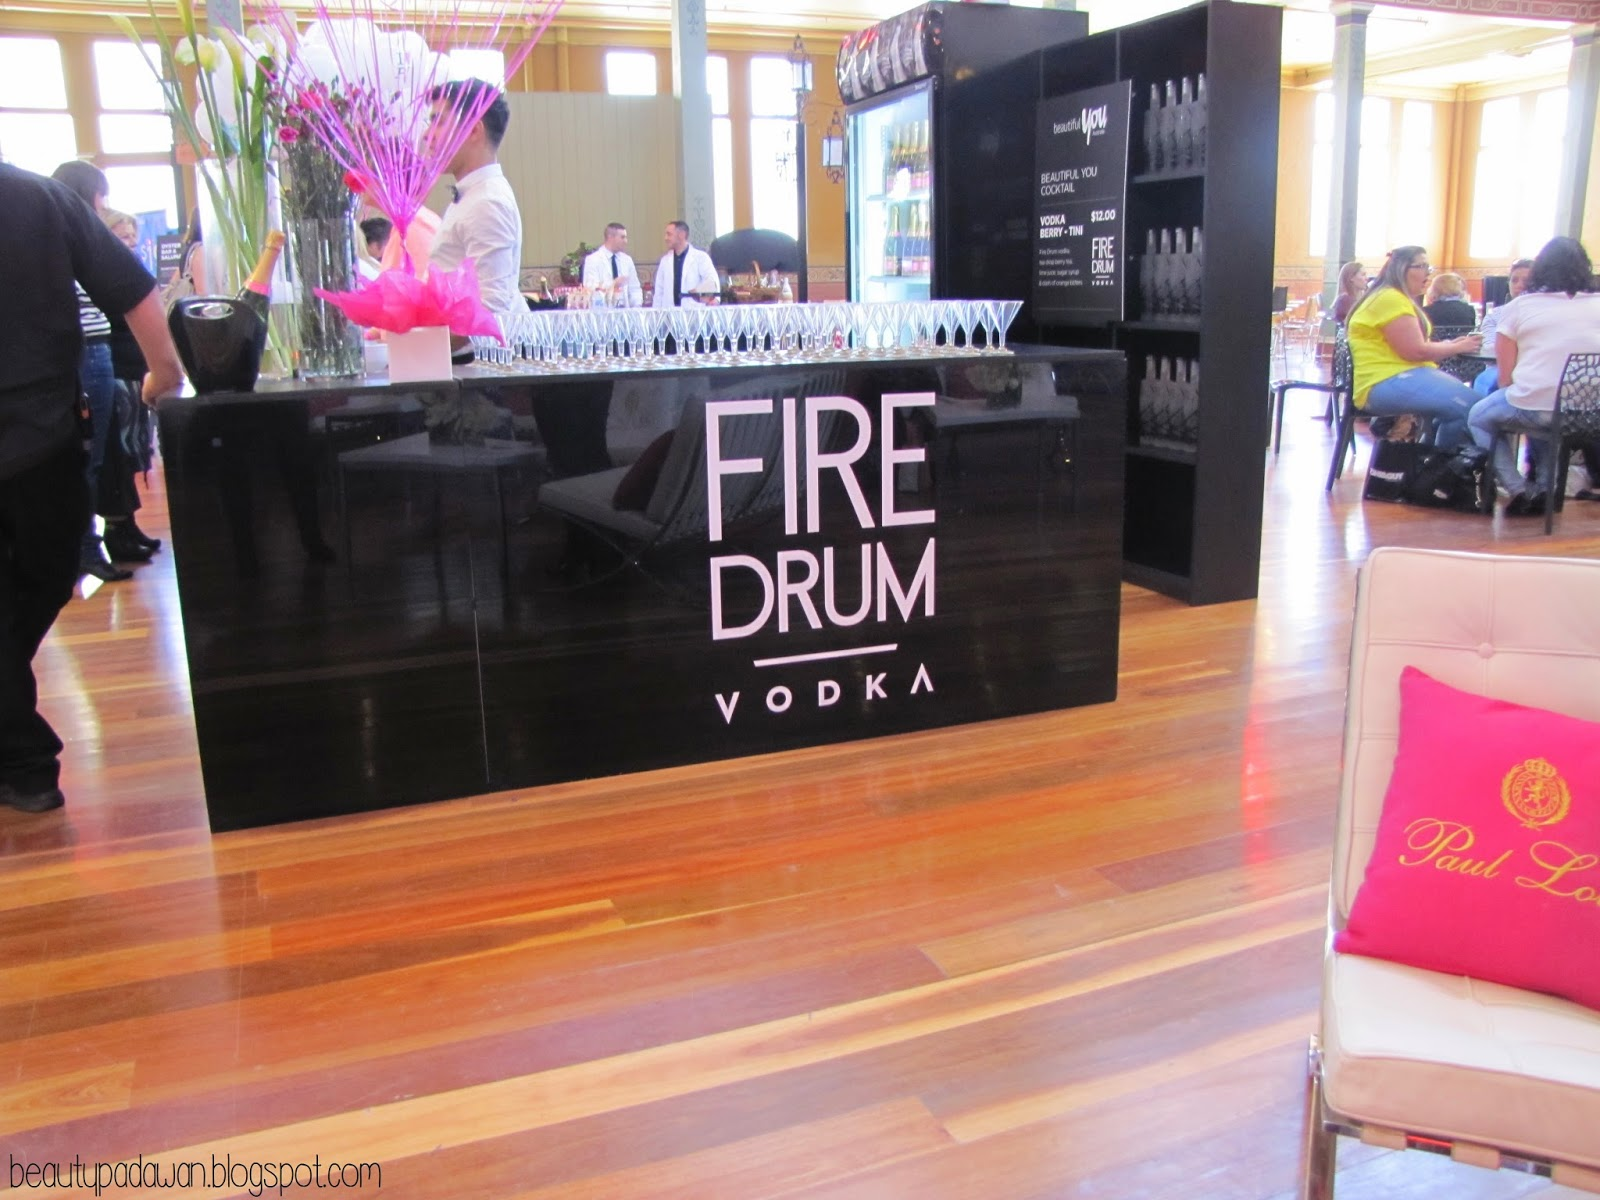 Beautiful You Australia; Fire Drum Vodka